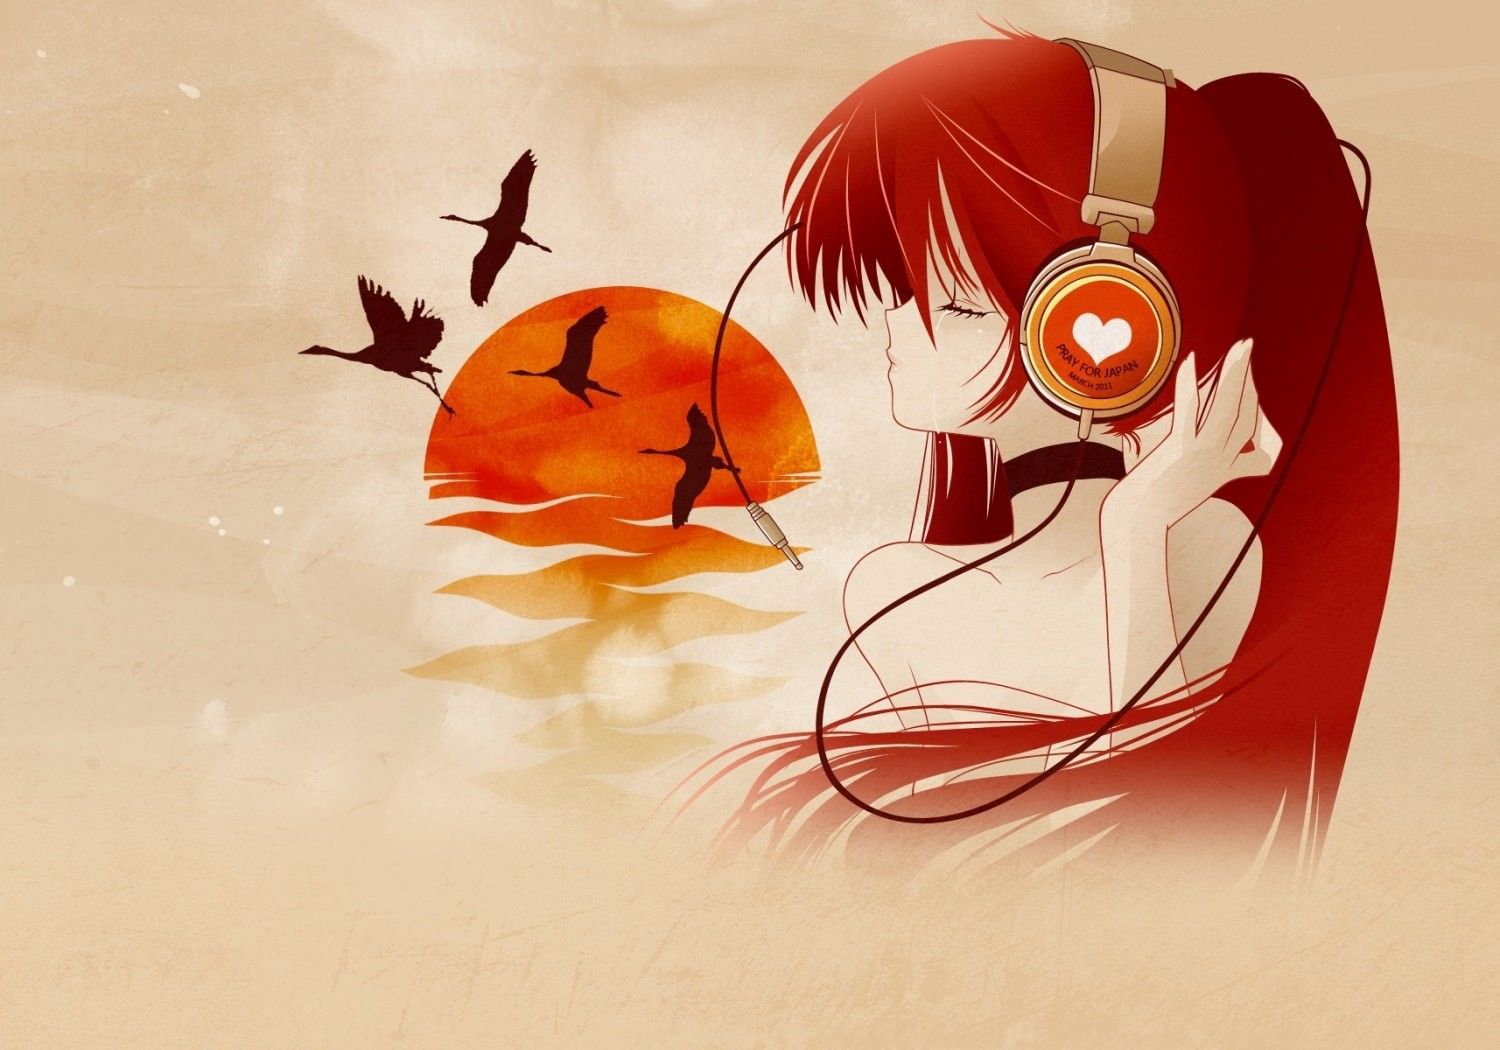 Anime Girl with Headset